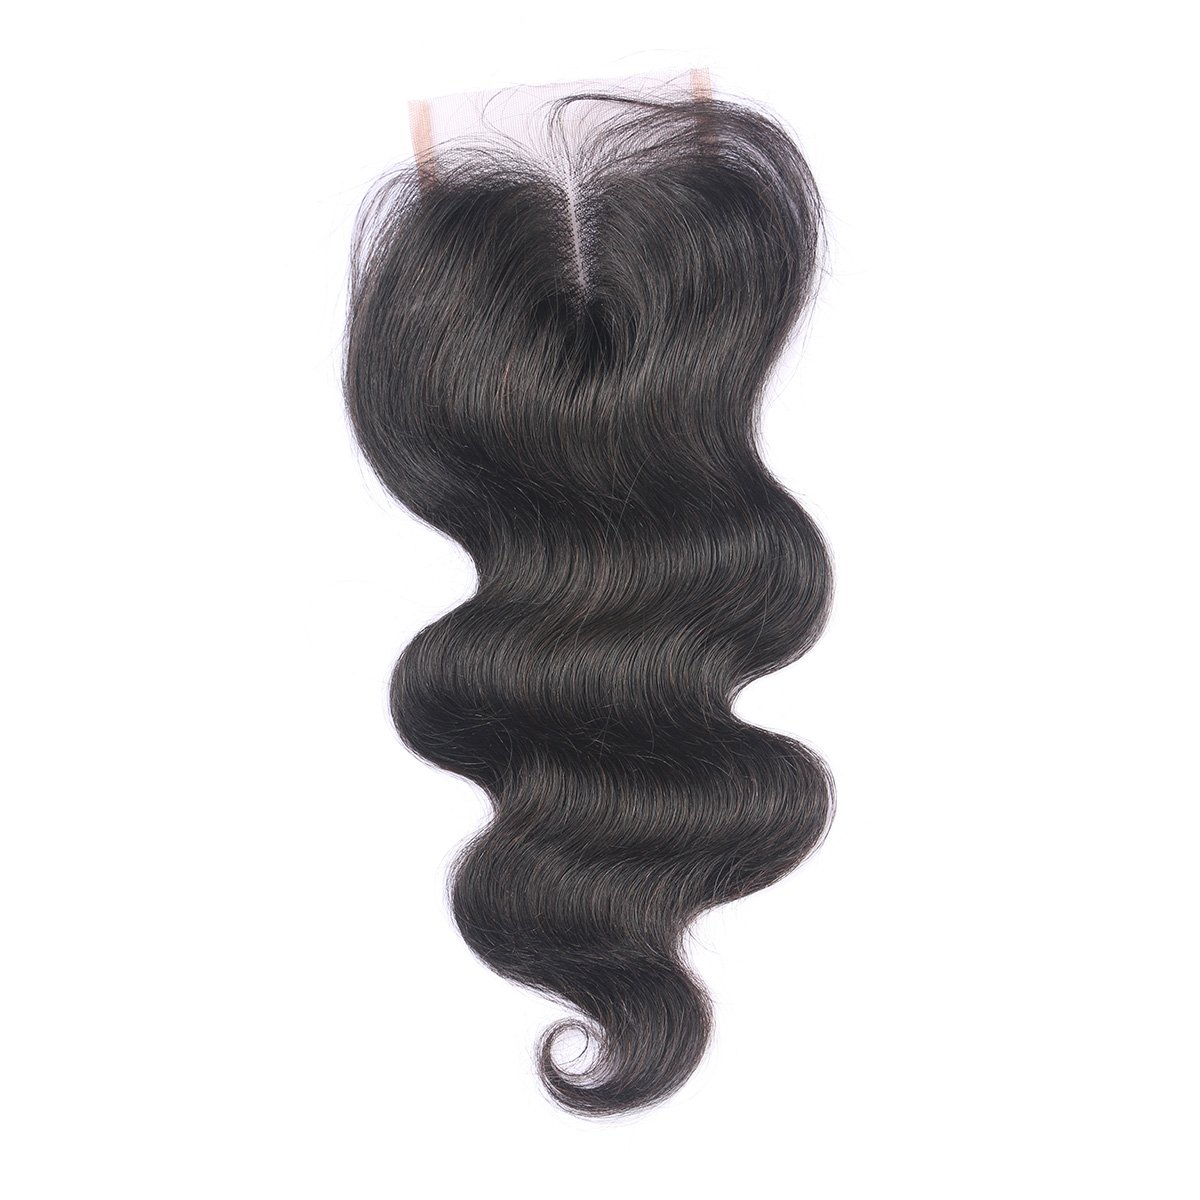 Free Part Lace Closure Human Hair, Brazilian Straight Closure with Baby Hair (08 inch)